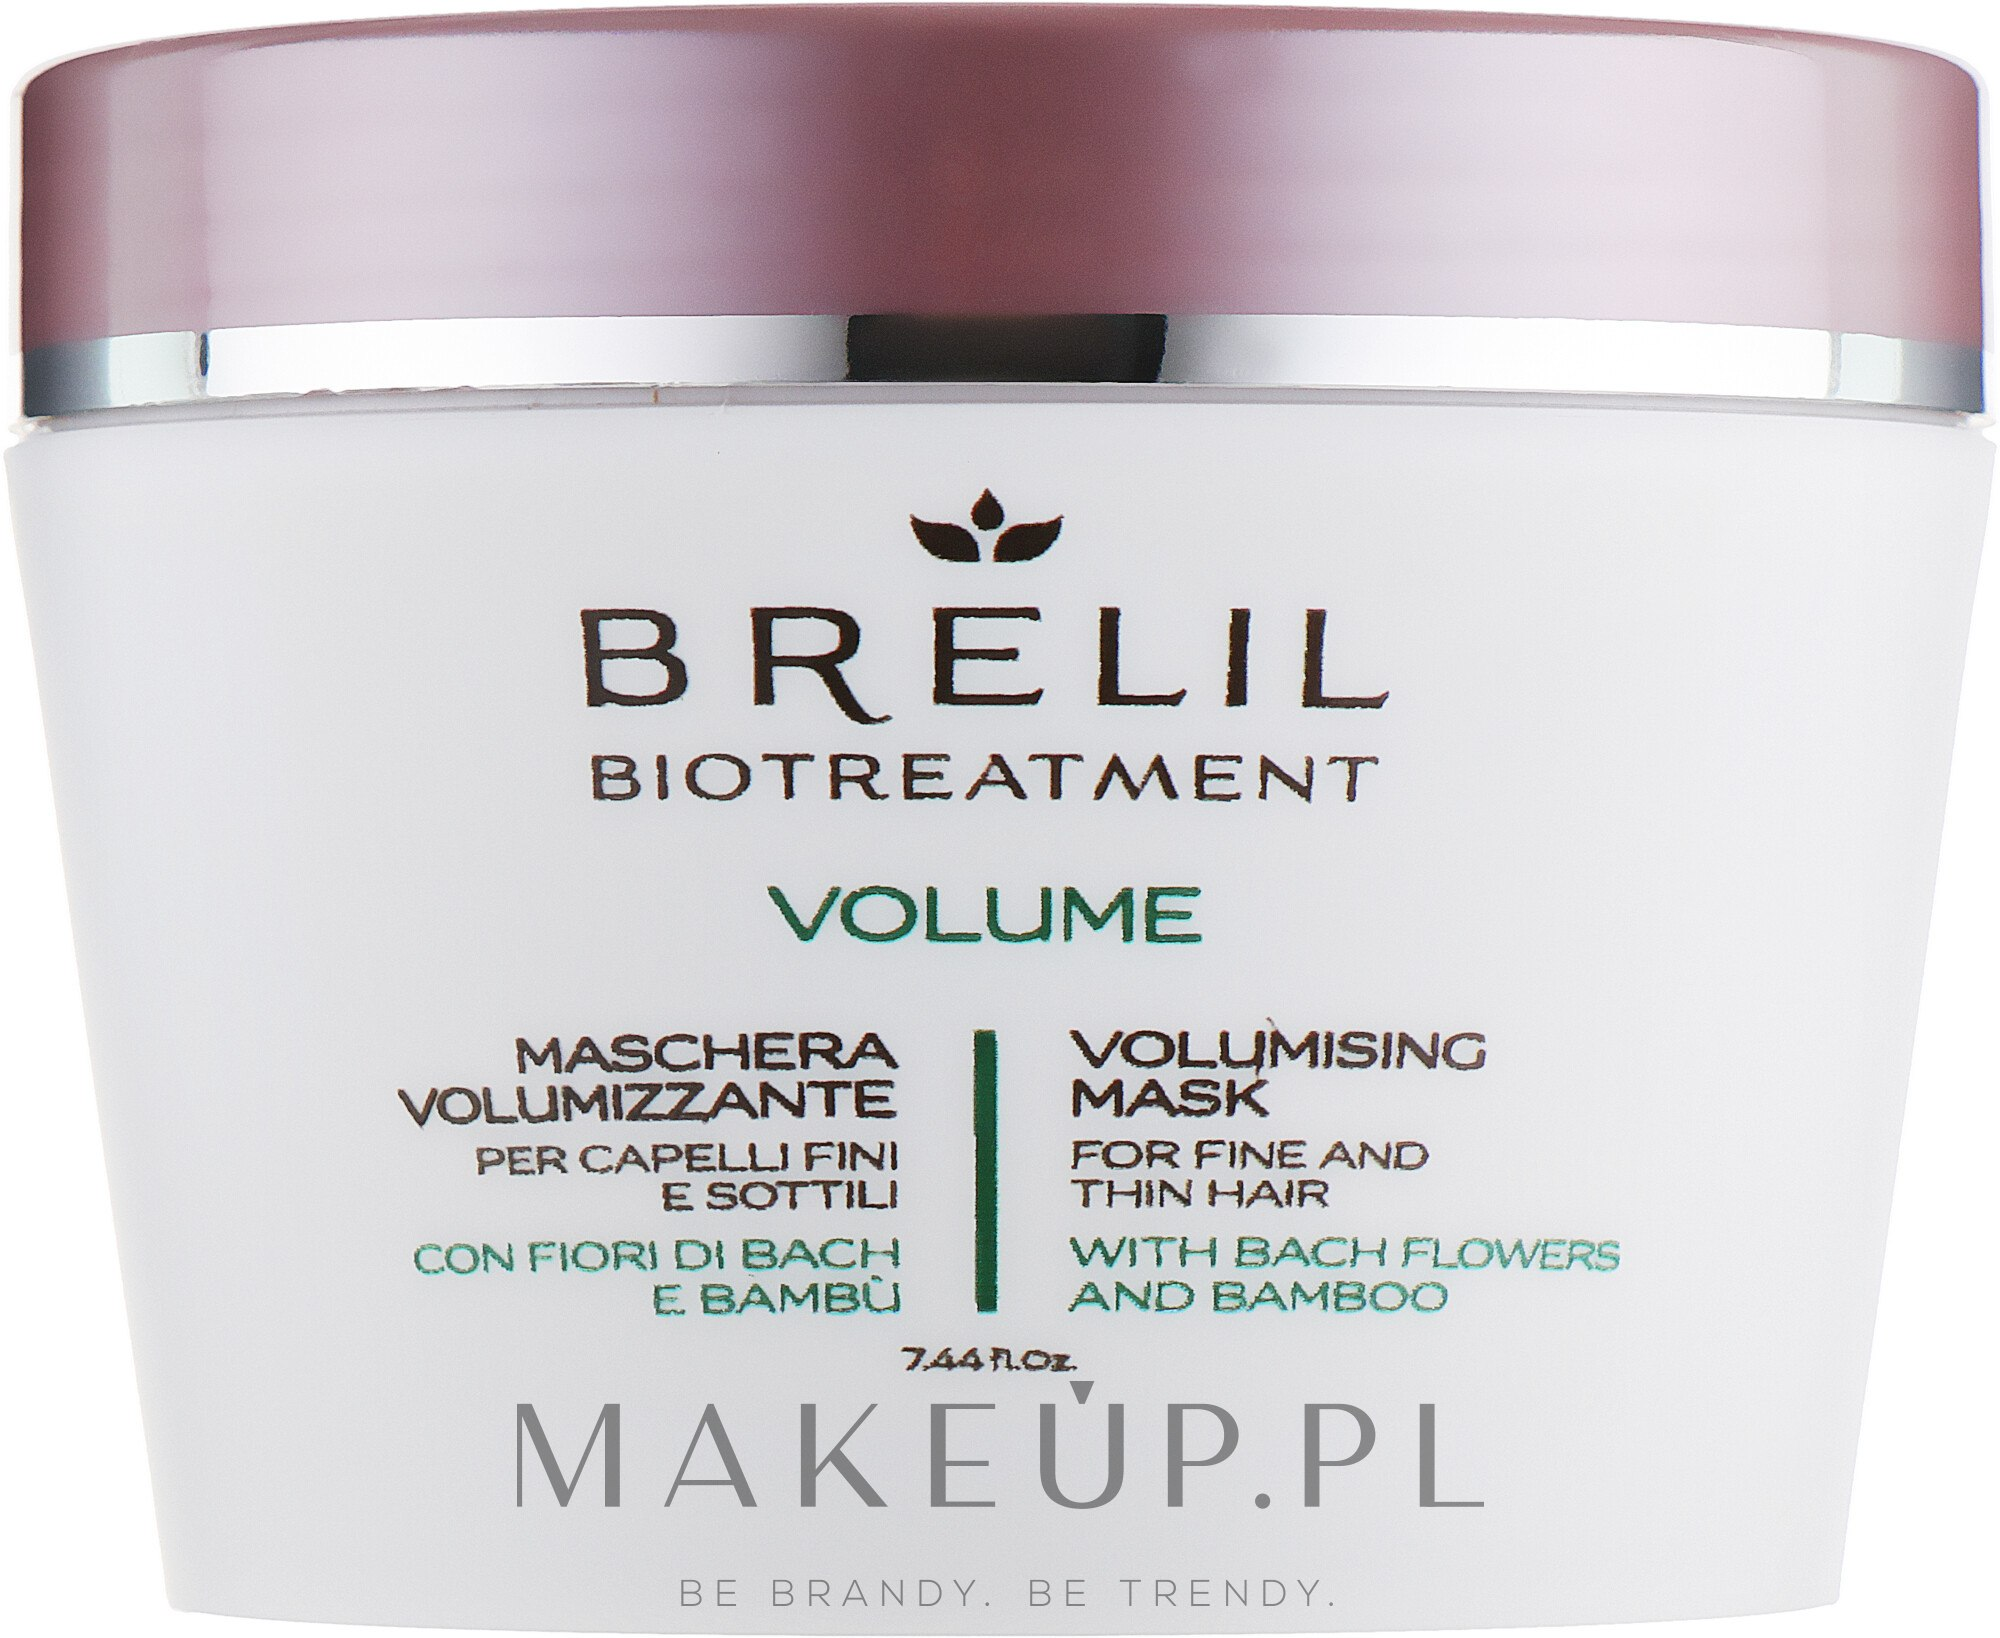 Maska dodająca objętości włosom cienkim - Brelil Bio Treatment Volume Volumising Hair Mask For Fine And Thin Hair — фото 220 ml